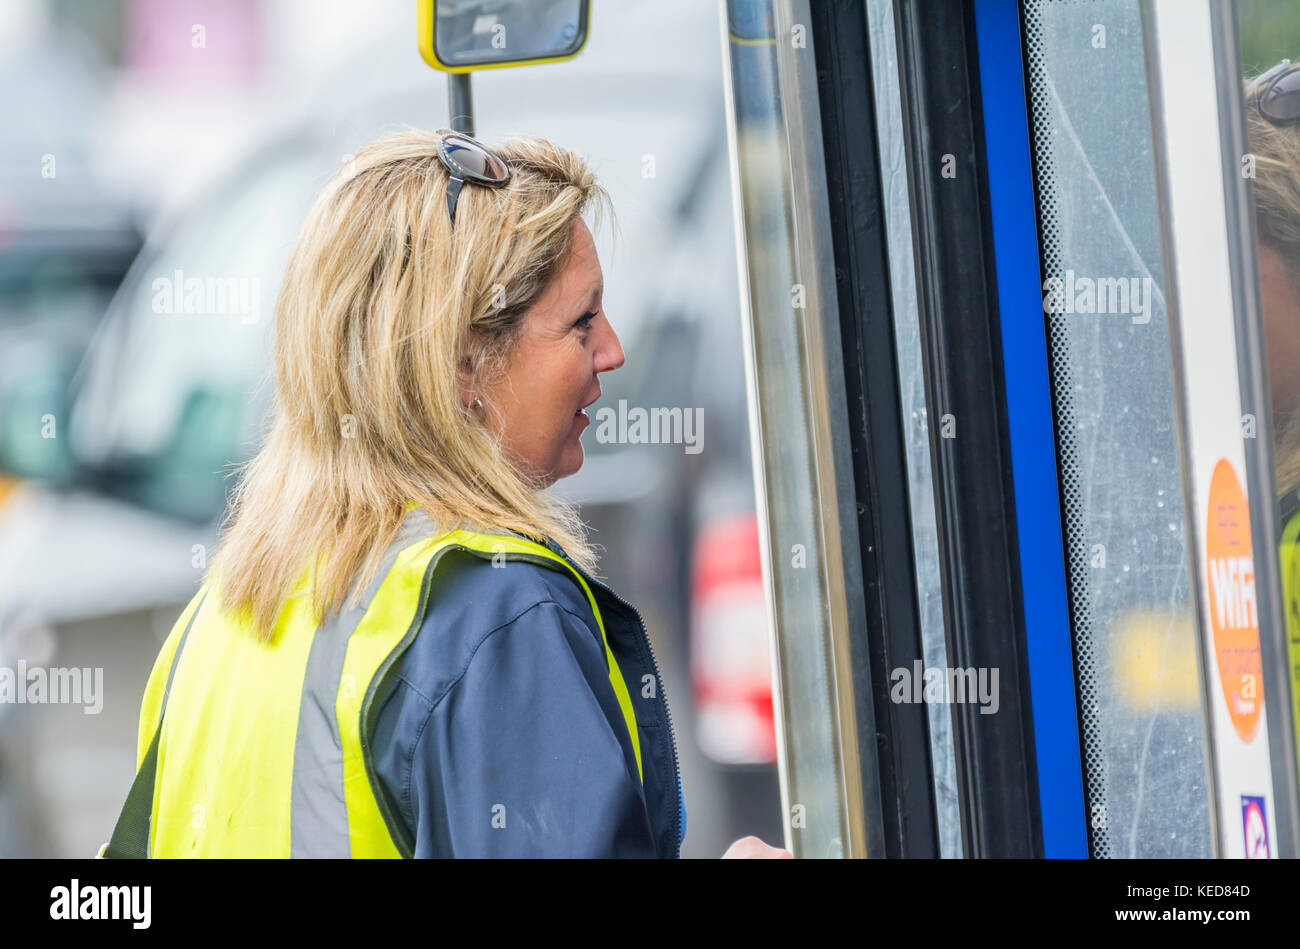 Female Stagecoach bus driver about to board a bus in the UK. - Stock Image